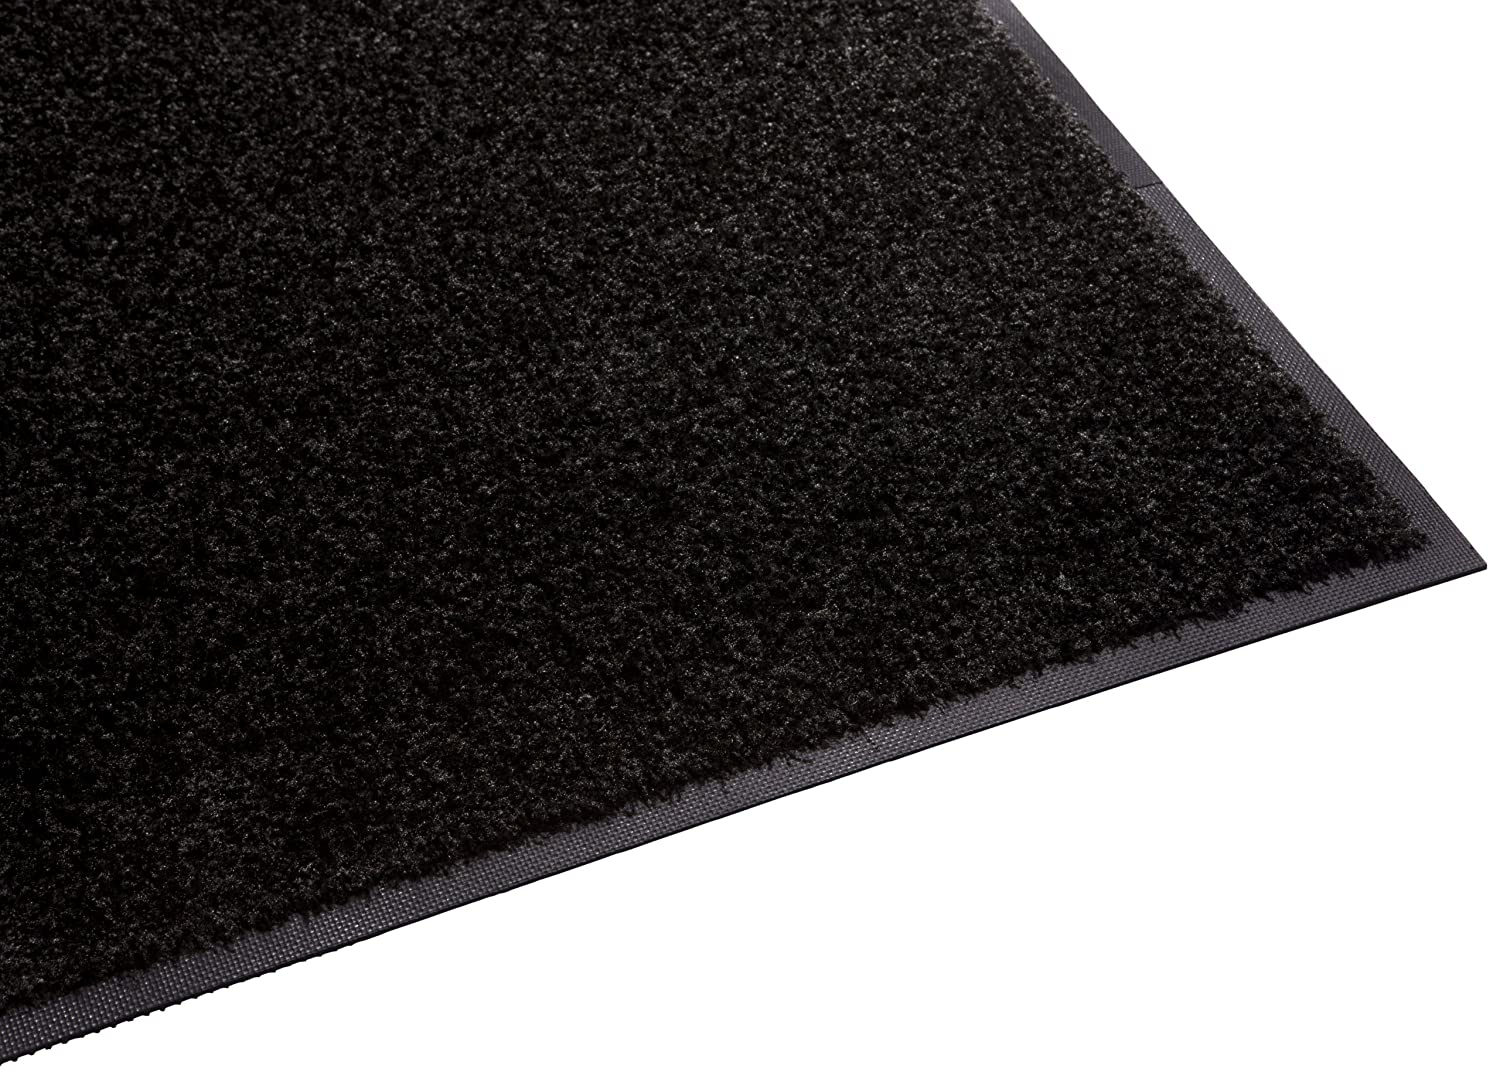 Guardian Platinum Series Indoor Wiper Floor Mat, Rubber with Nylon Carpet, 2'x14', Black